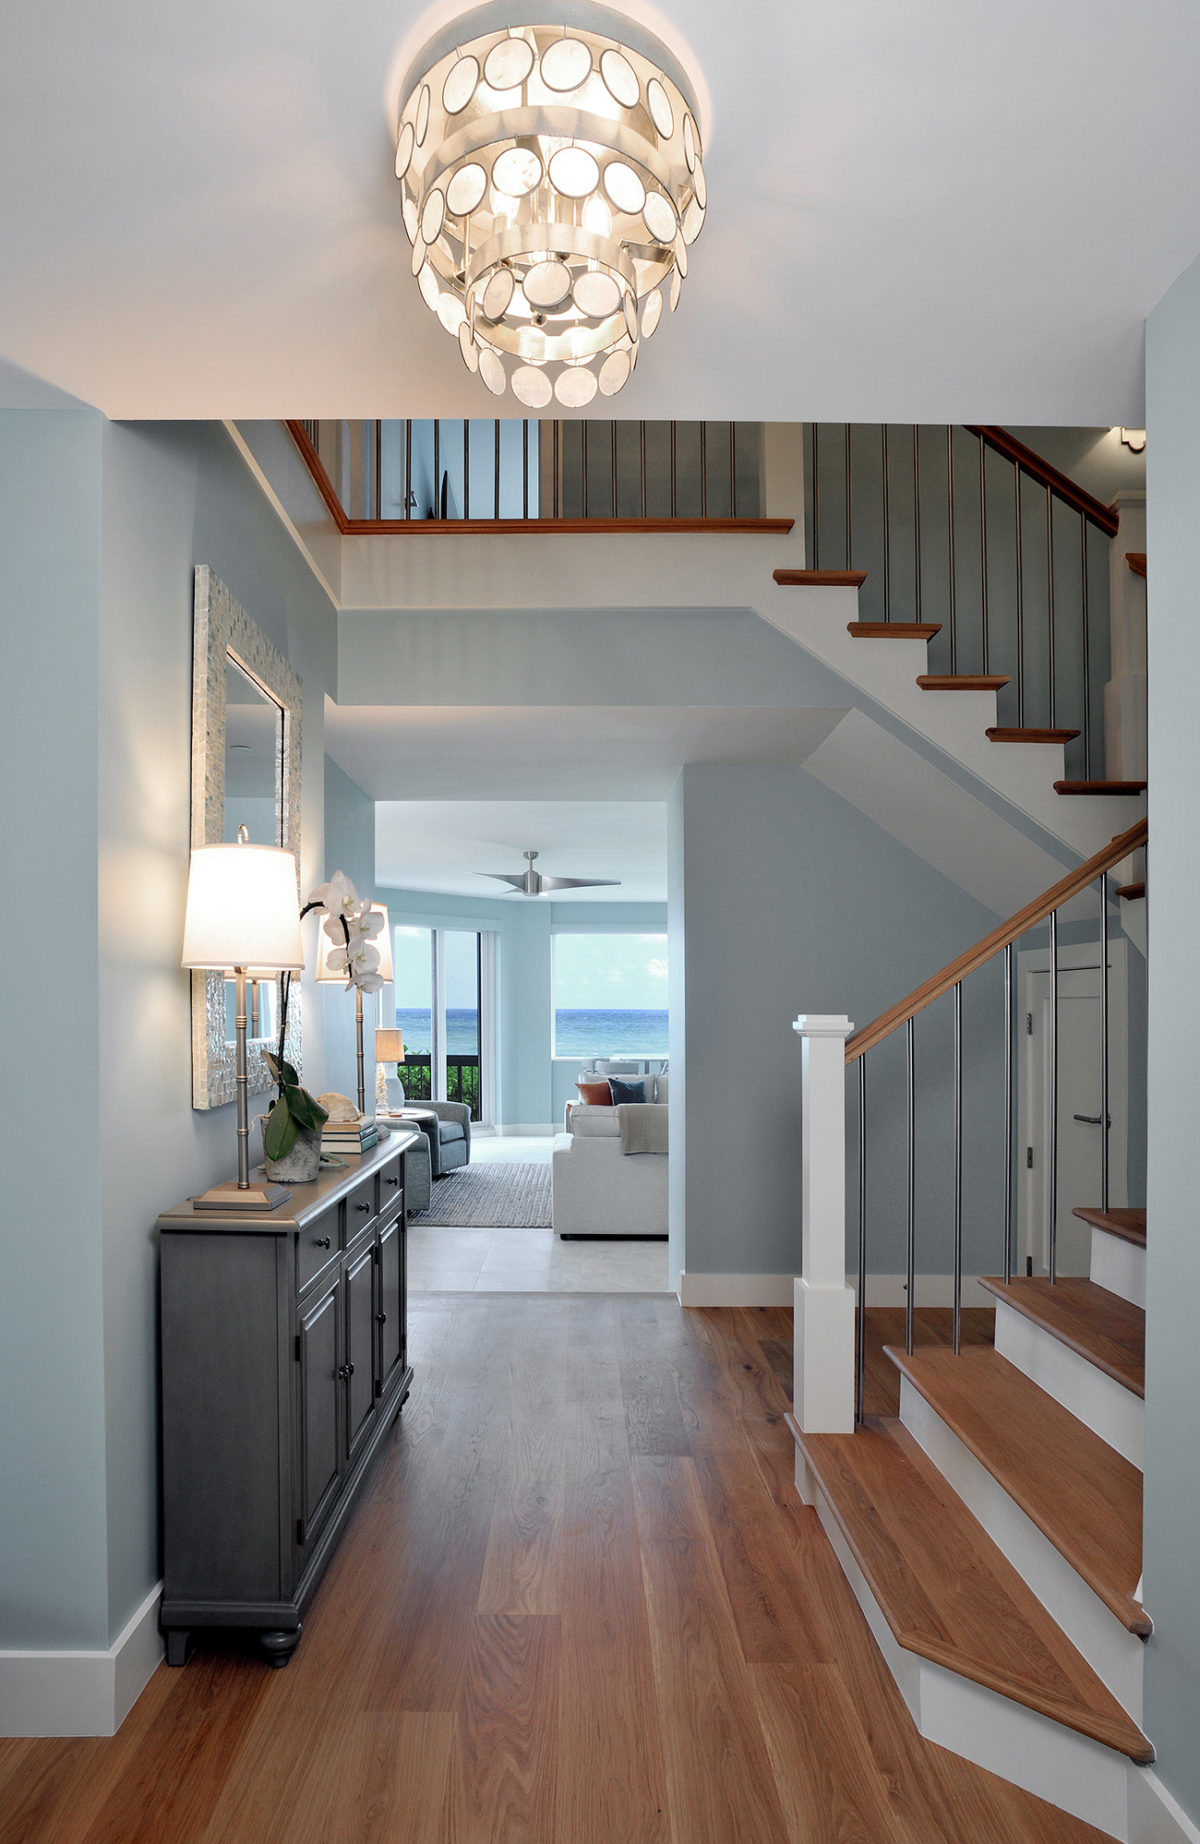 Entrance hallway of a beach house with wood floors